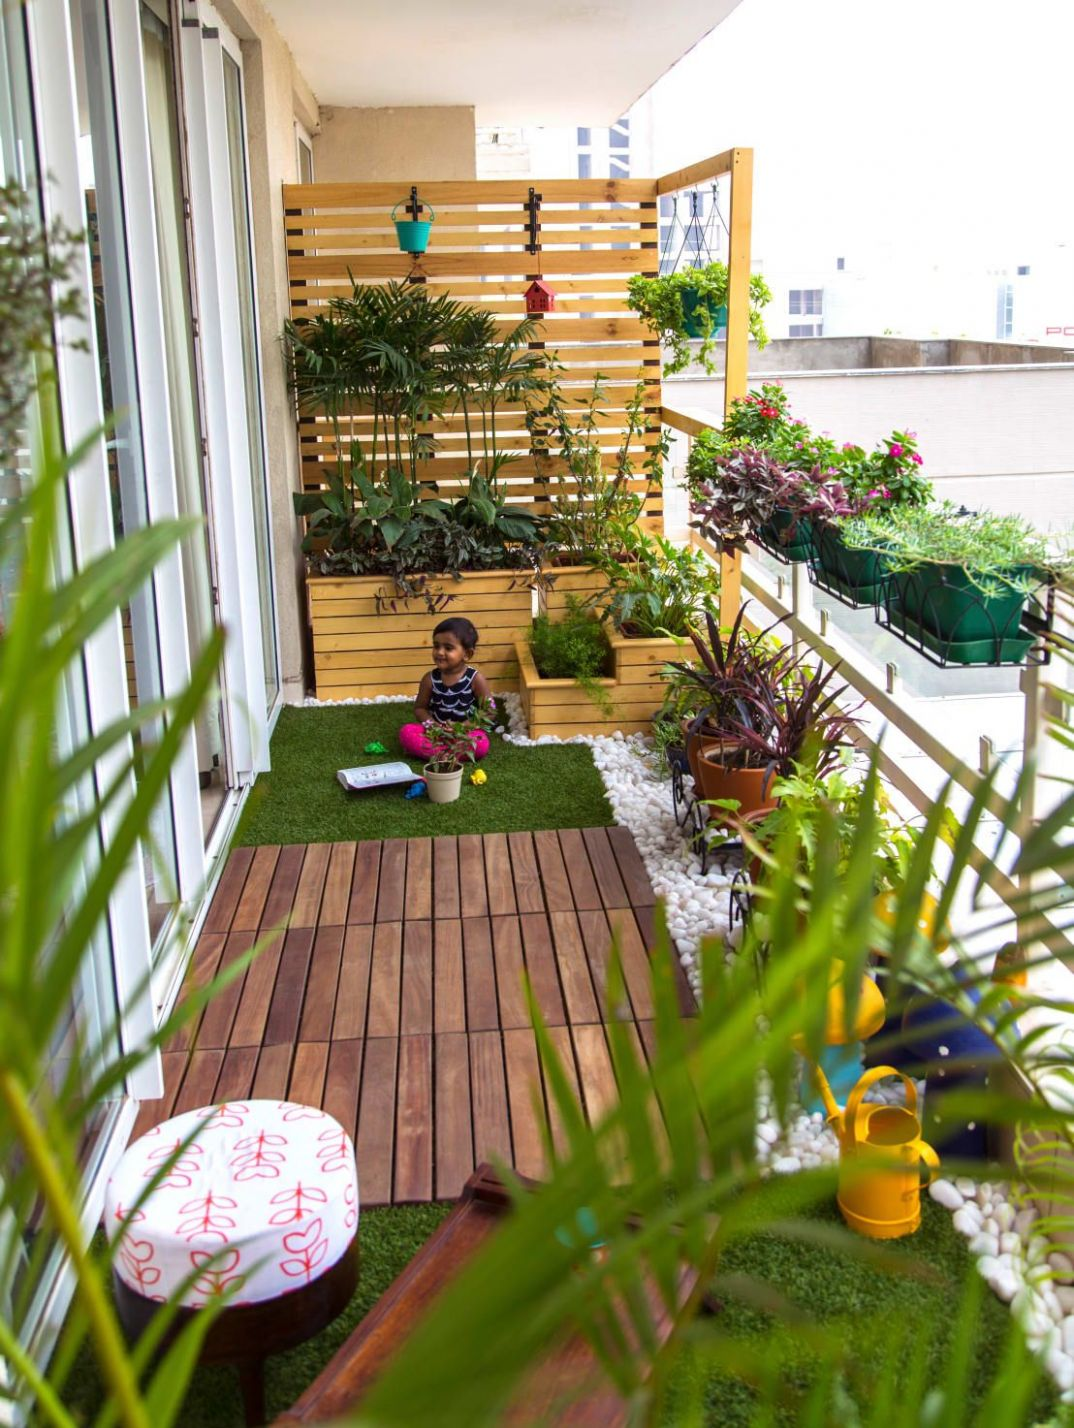 8 Smart Balcony Garden Ideas That are Awesome | Small balcony ...